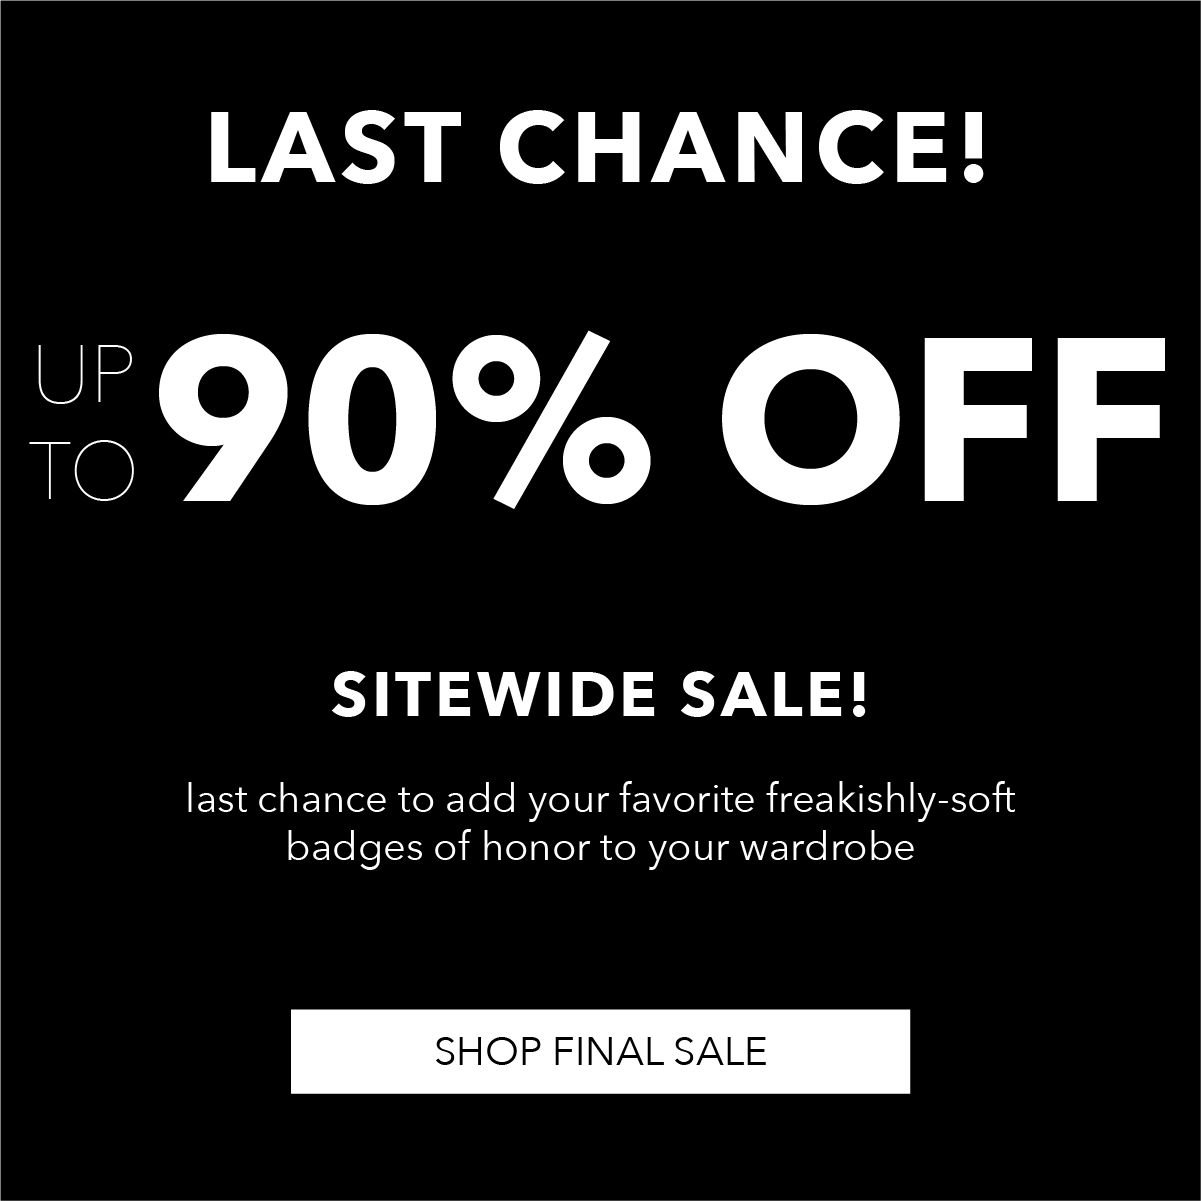 up to 90% off: thank you for an amazing journey!